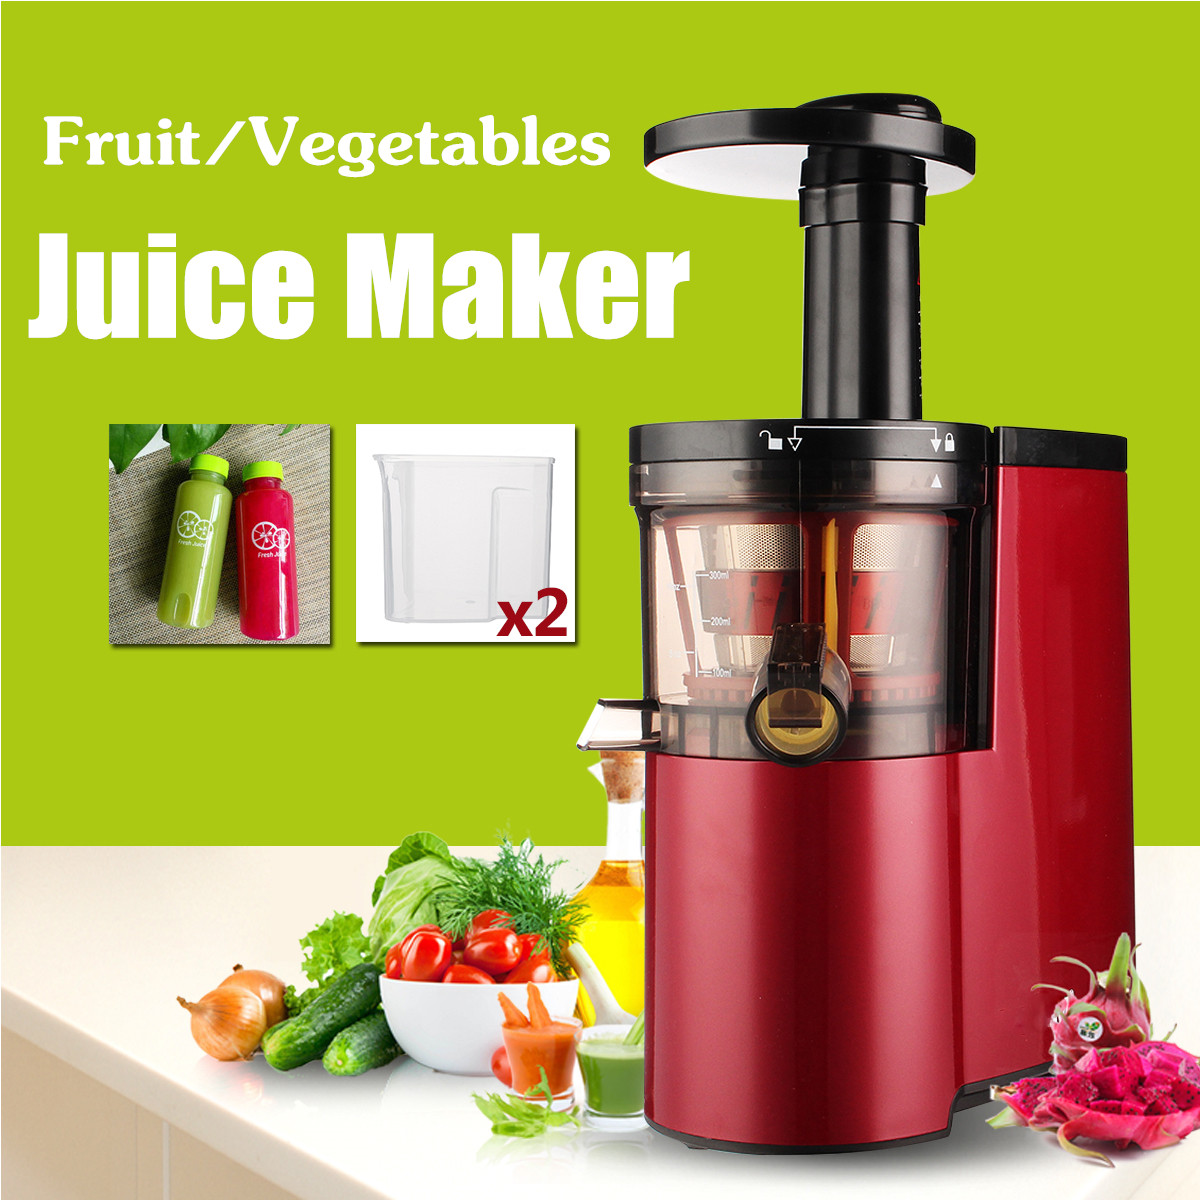 220V Electric Slow Juicer Fruits Vegetables Low Speed Juice Maker Extractor 150W Self-cleaning Ultra-quiet Red Squeezing цена 2017